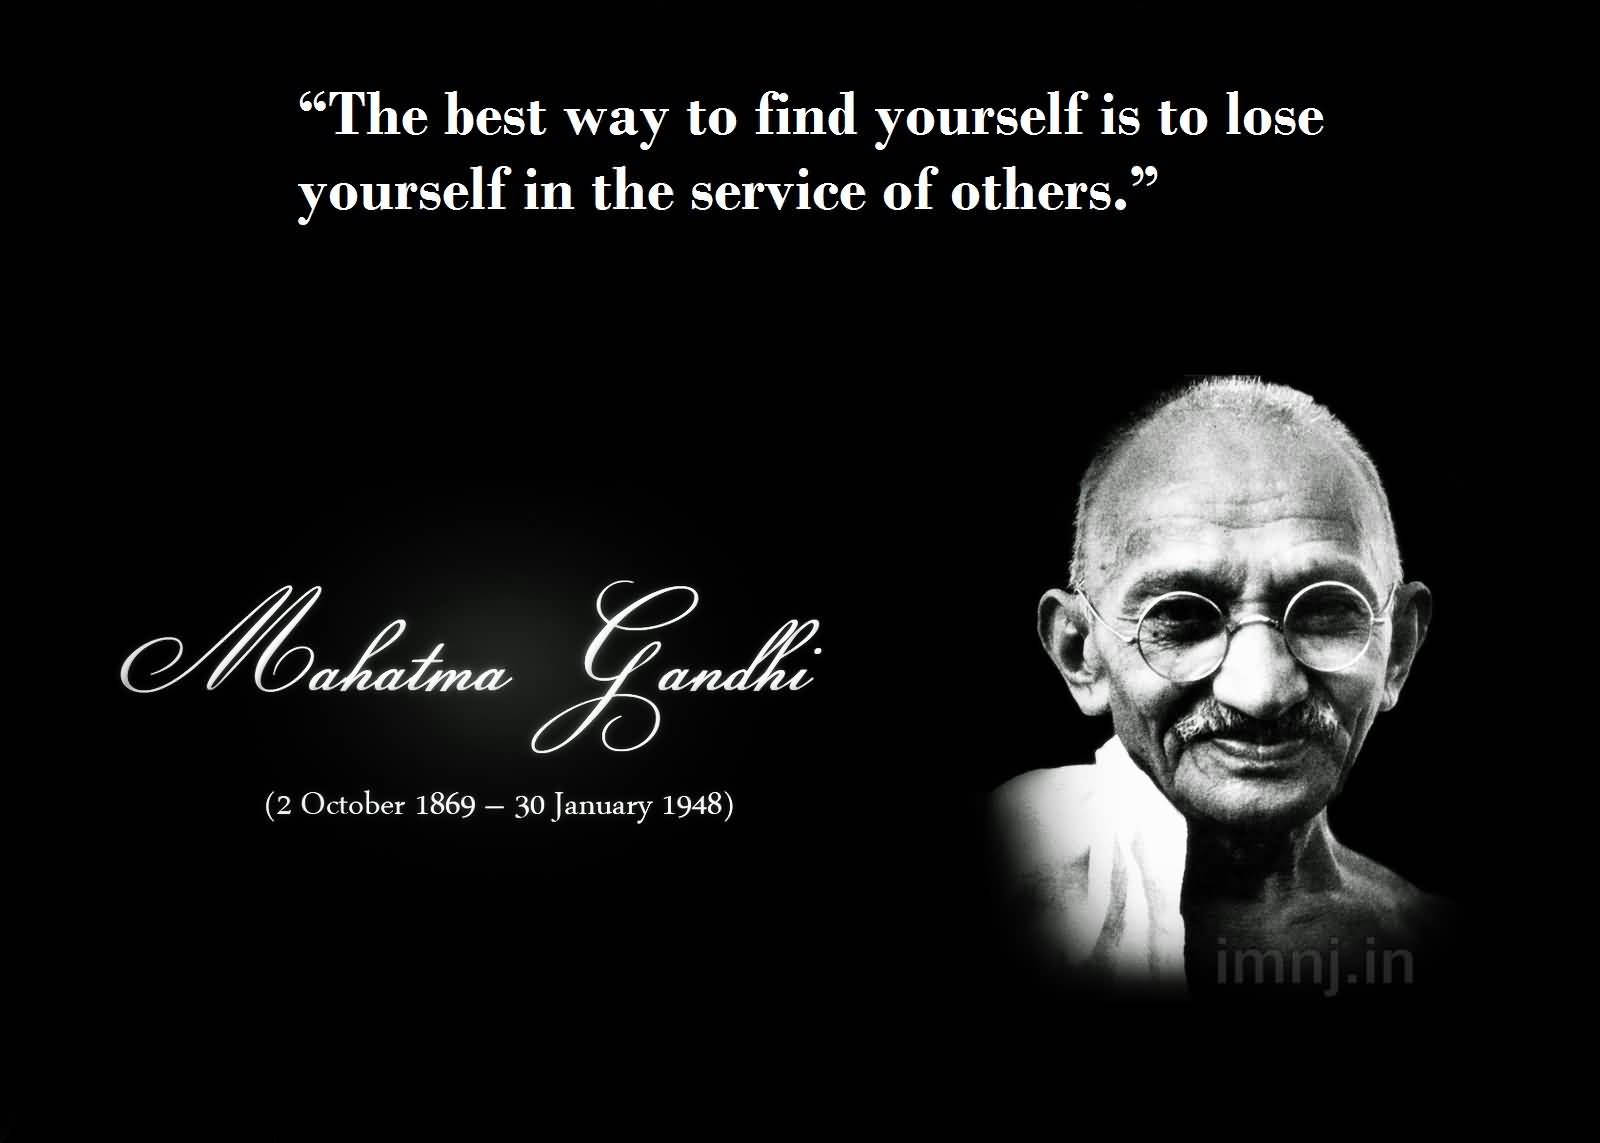 Gandhi Quotes On Love Unique 20 Mahatma Gandhi Quotes On Love And Pictures  Quotesbae